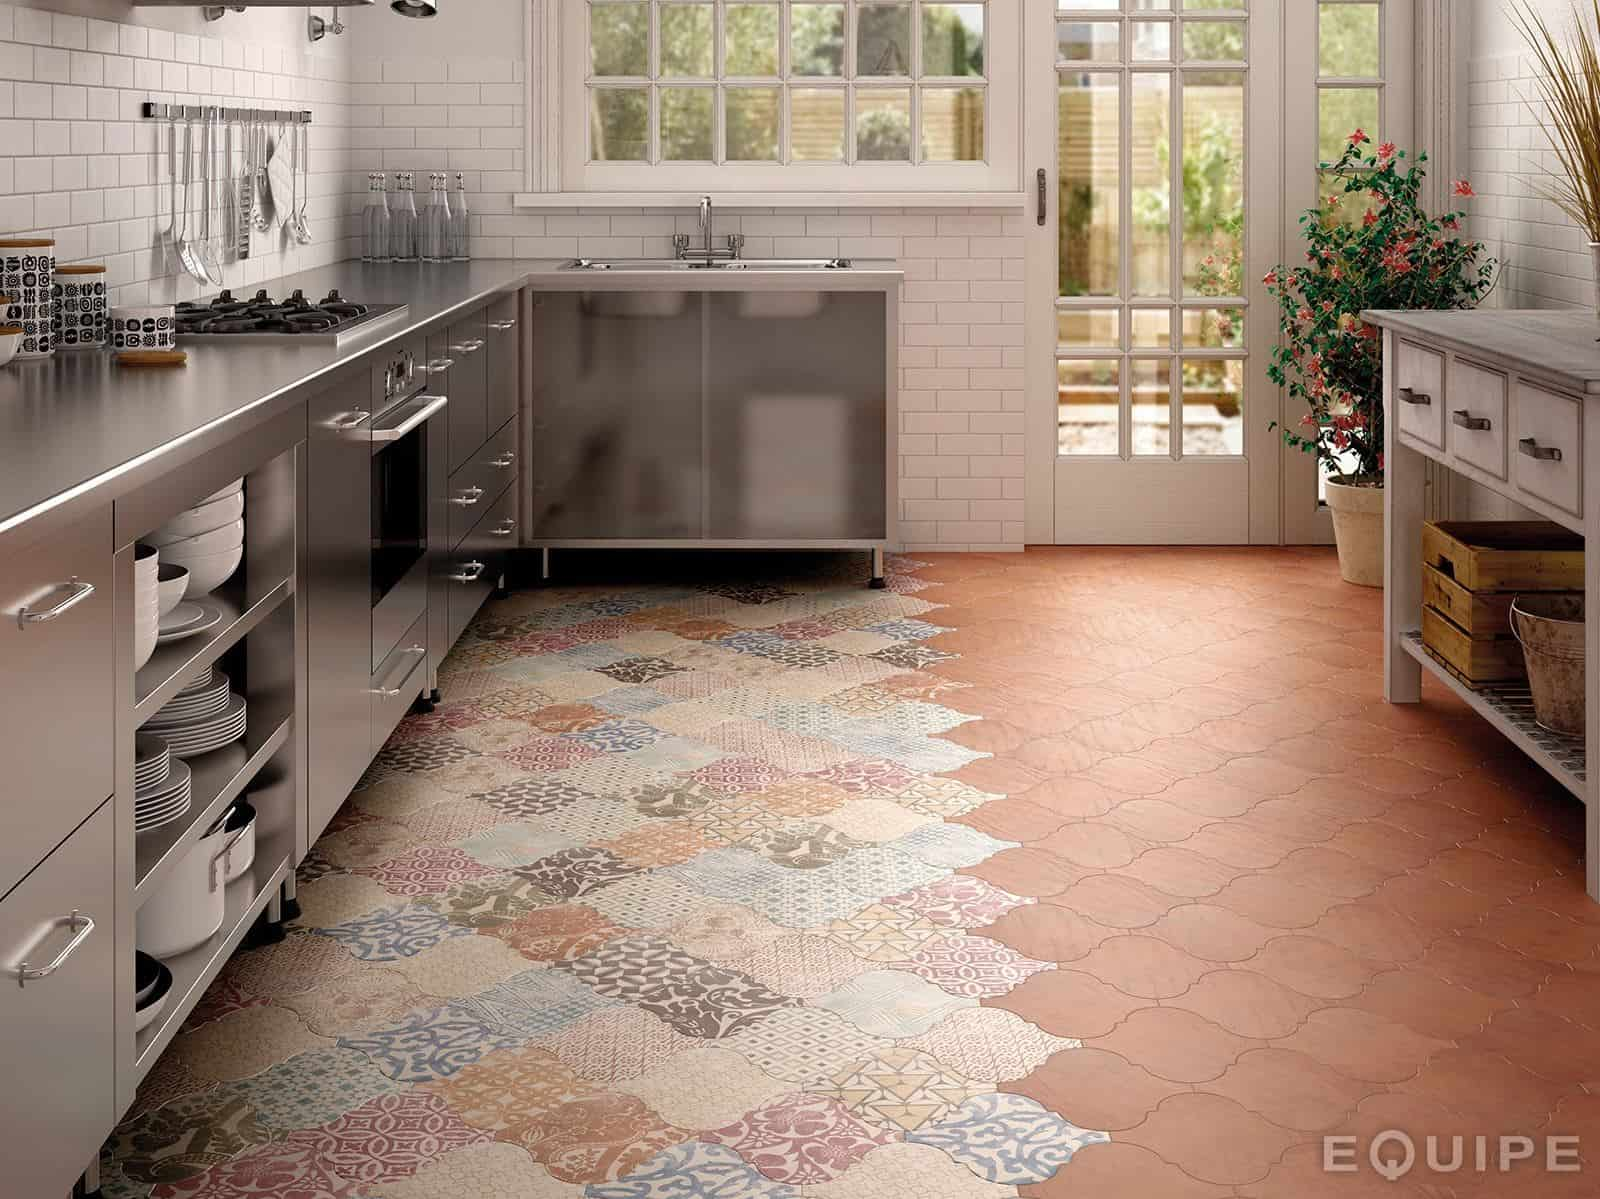 floor tile for kitchen garden windows 21 arabesque ideas wall and backsplash view in gallery patchwork equipe 4 jpg